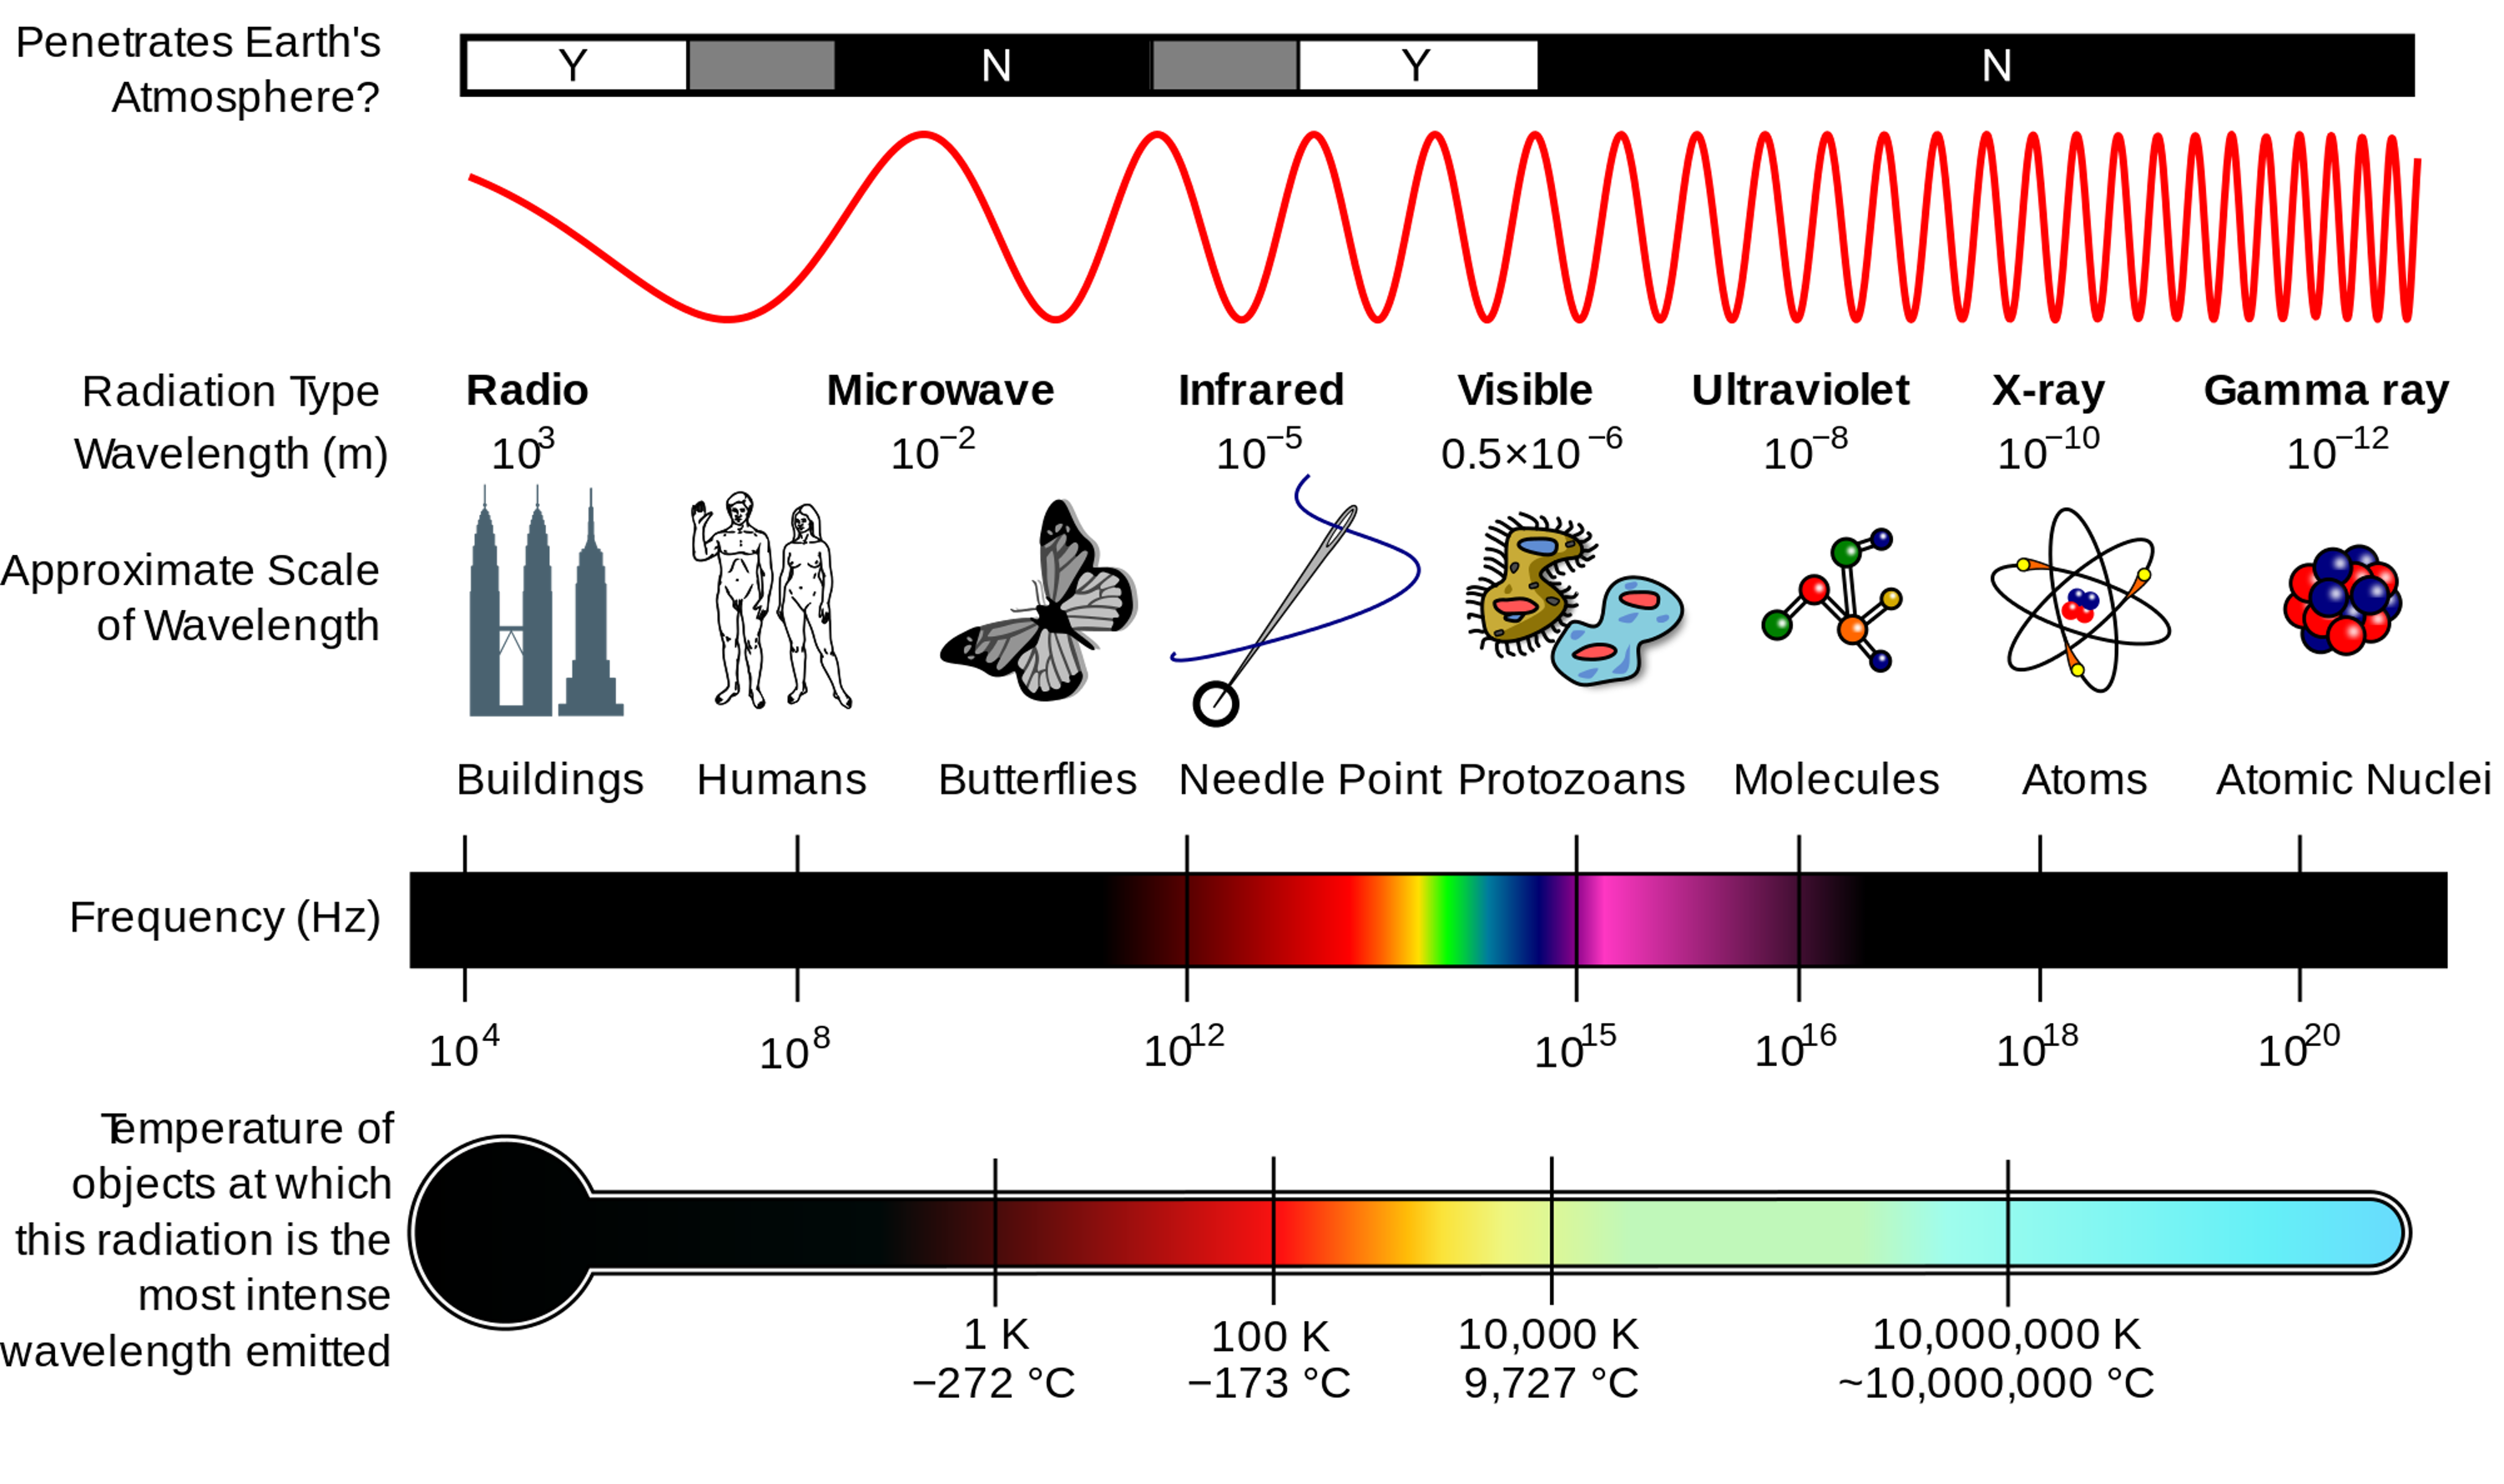 Wifi works closer to the radio and microwave side of the spectrum, while lifi is in the visible light spectrum.